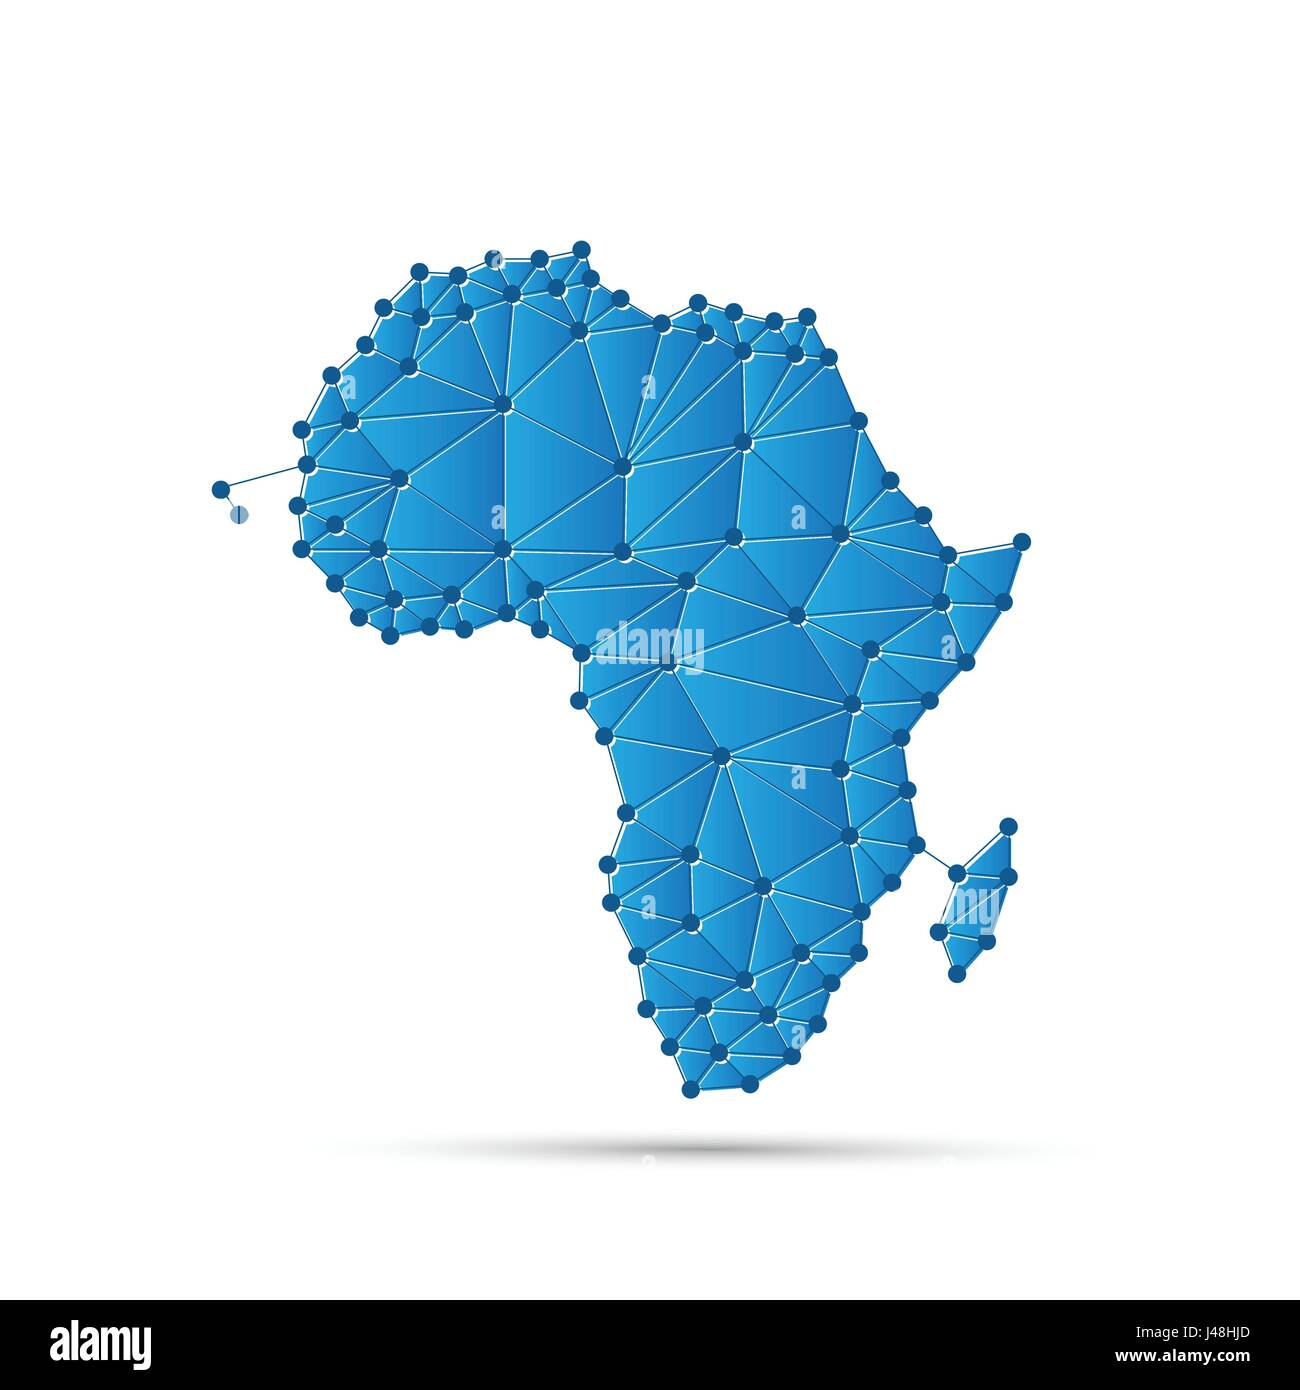 Abstract Polygonal Map of Africa with Digital Network Connections